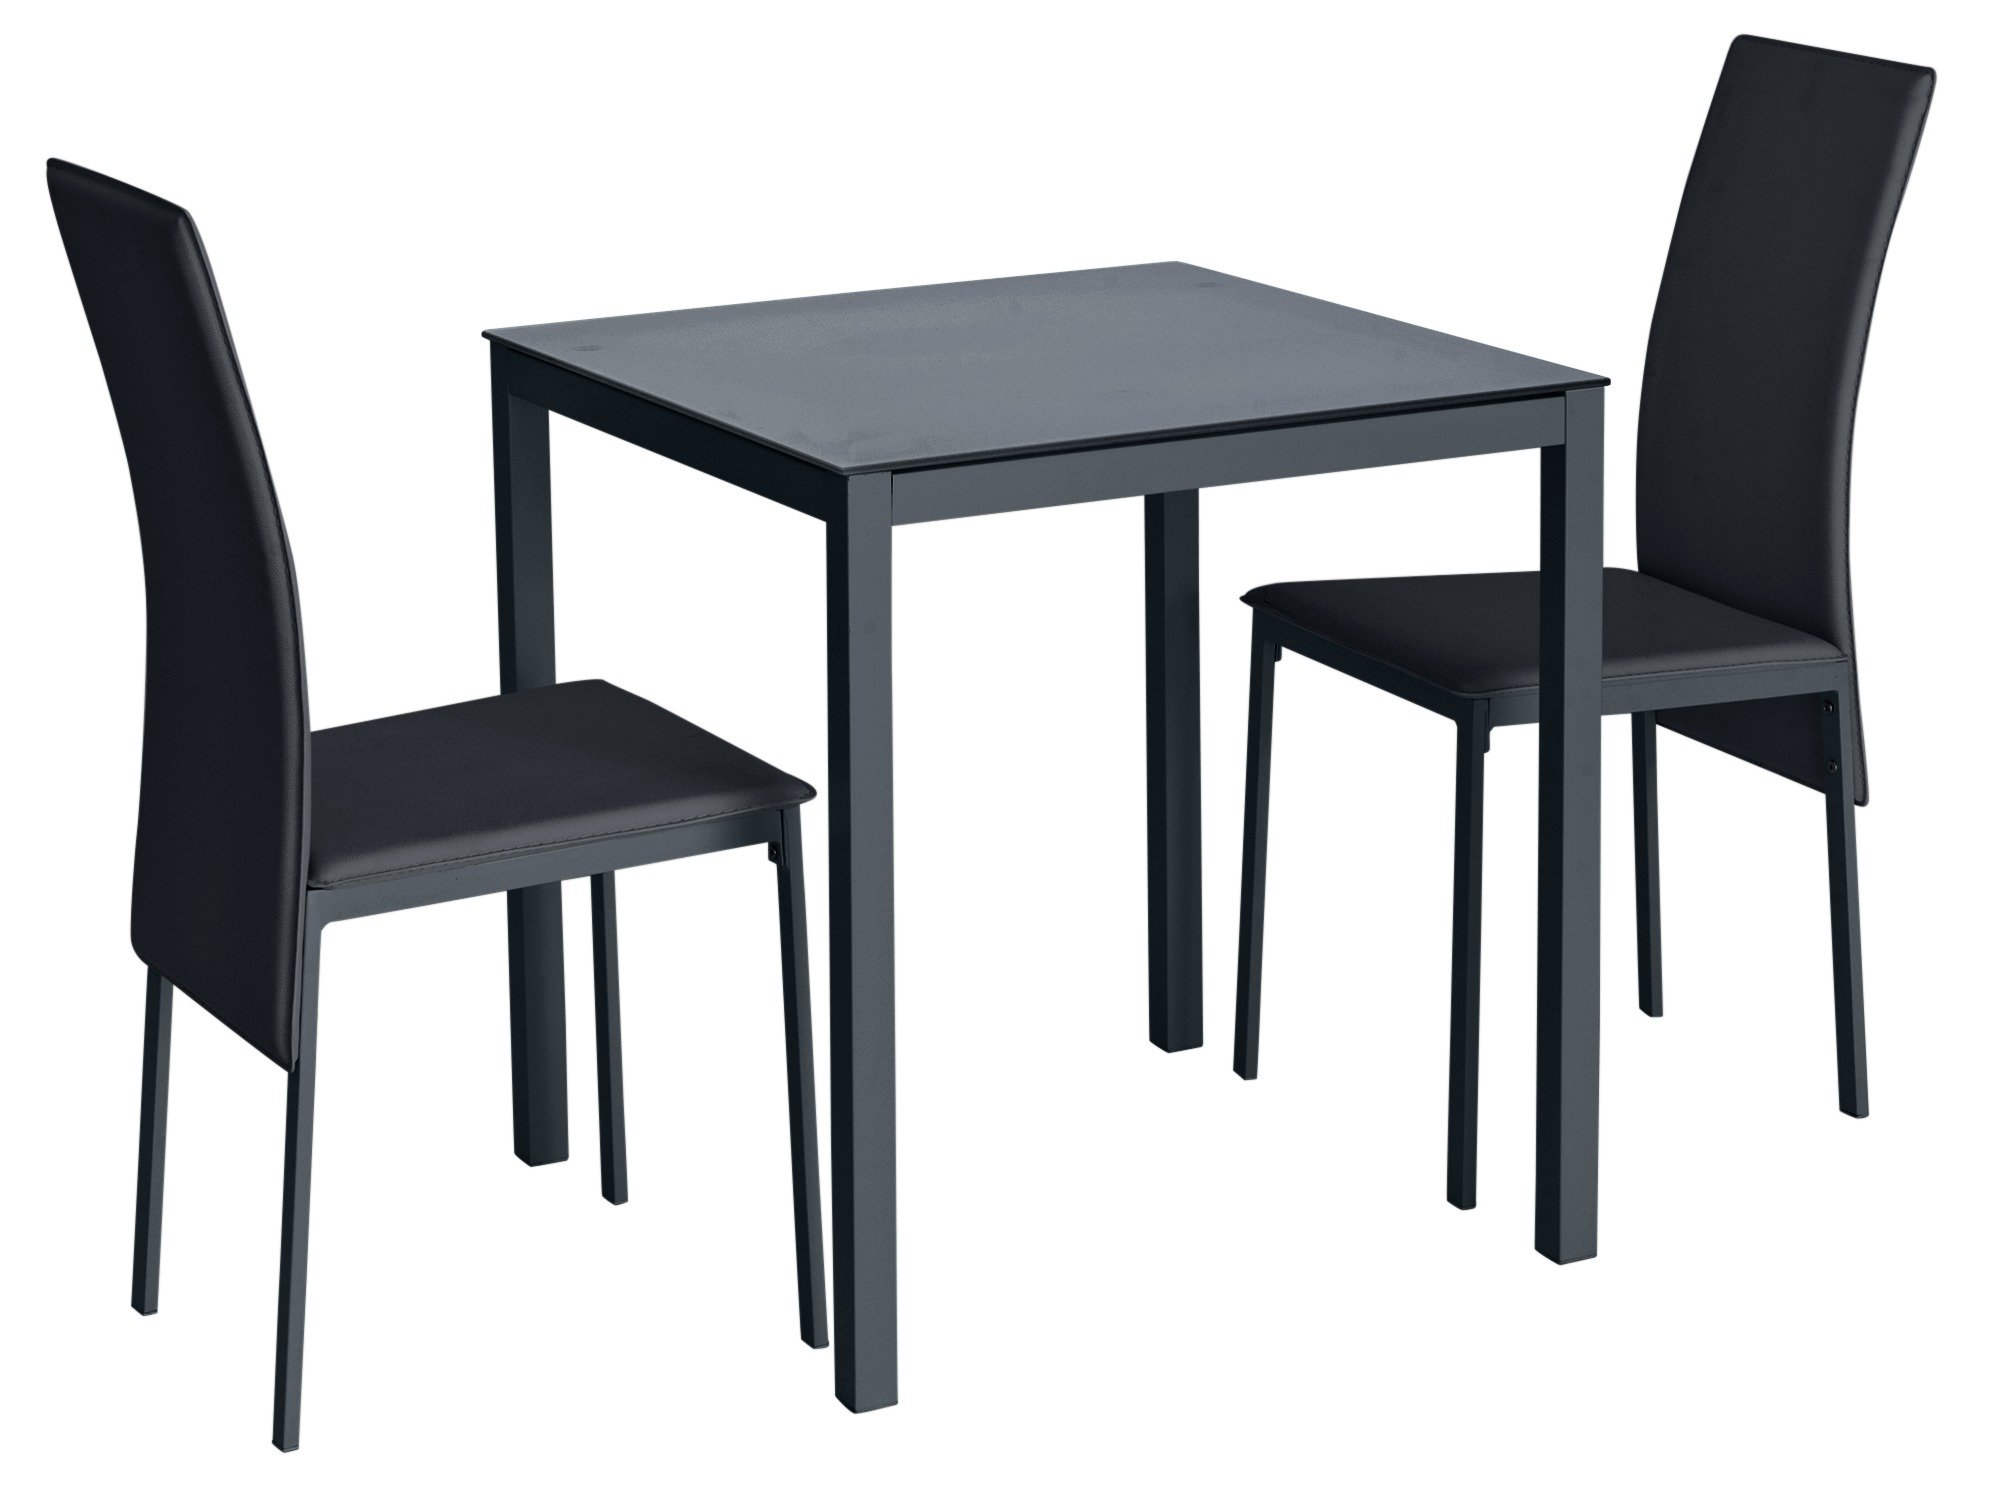 Argos Home Lido Glass Dining Table & 2 Black Chairs